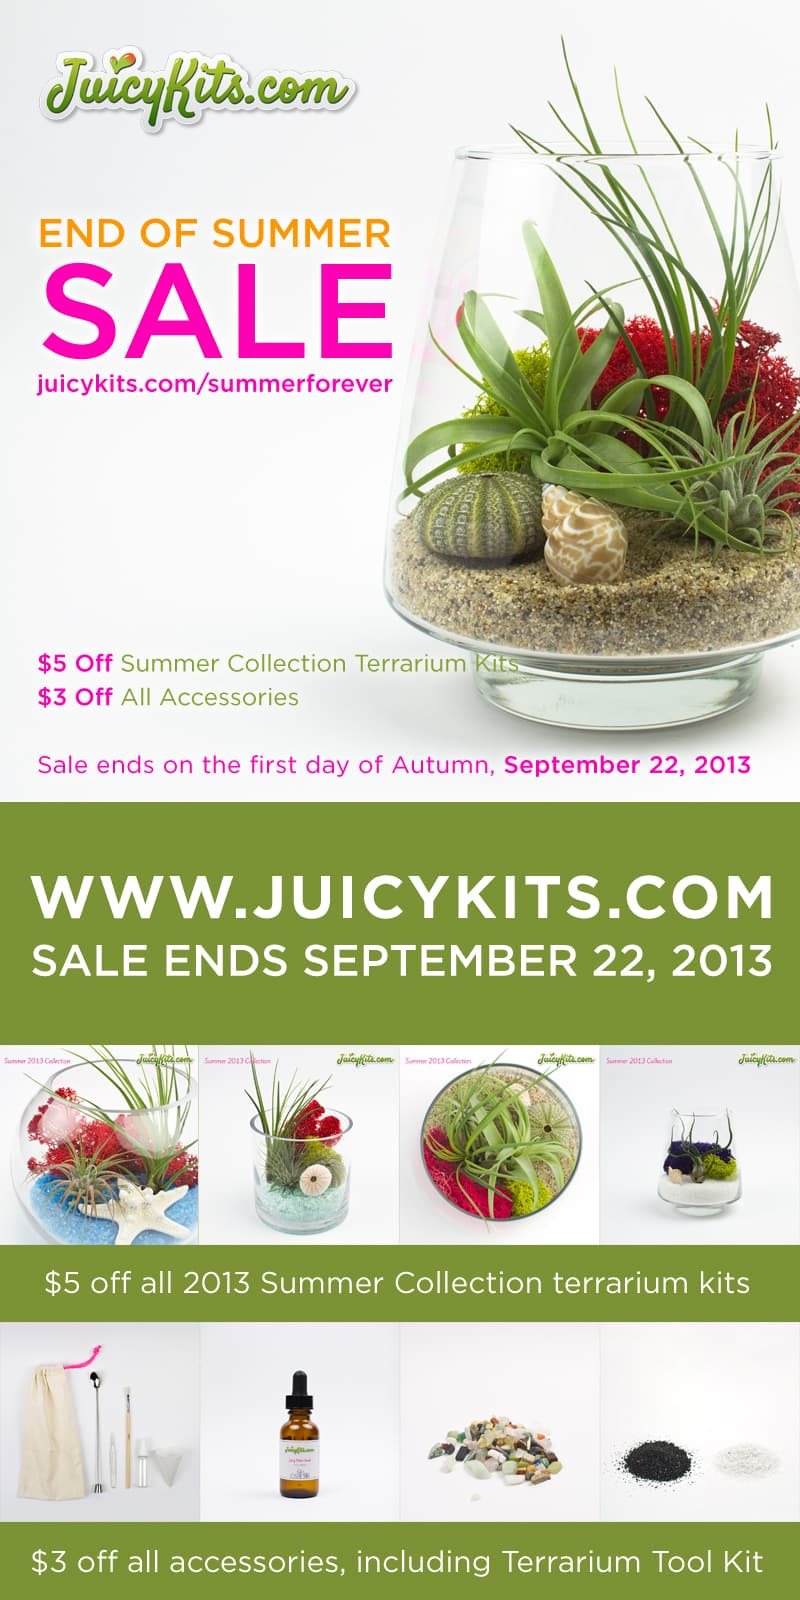 juicykits.com-end-of-summer-sale-tall